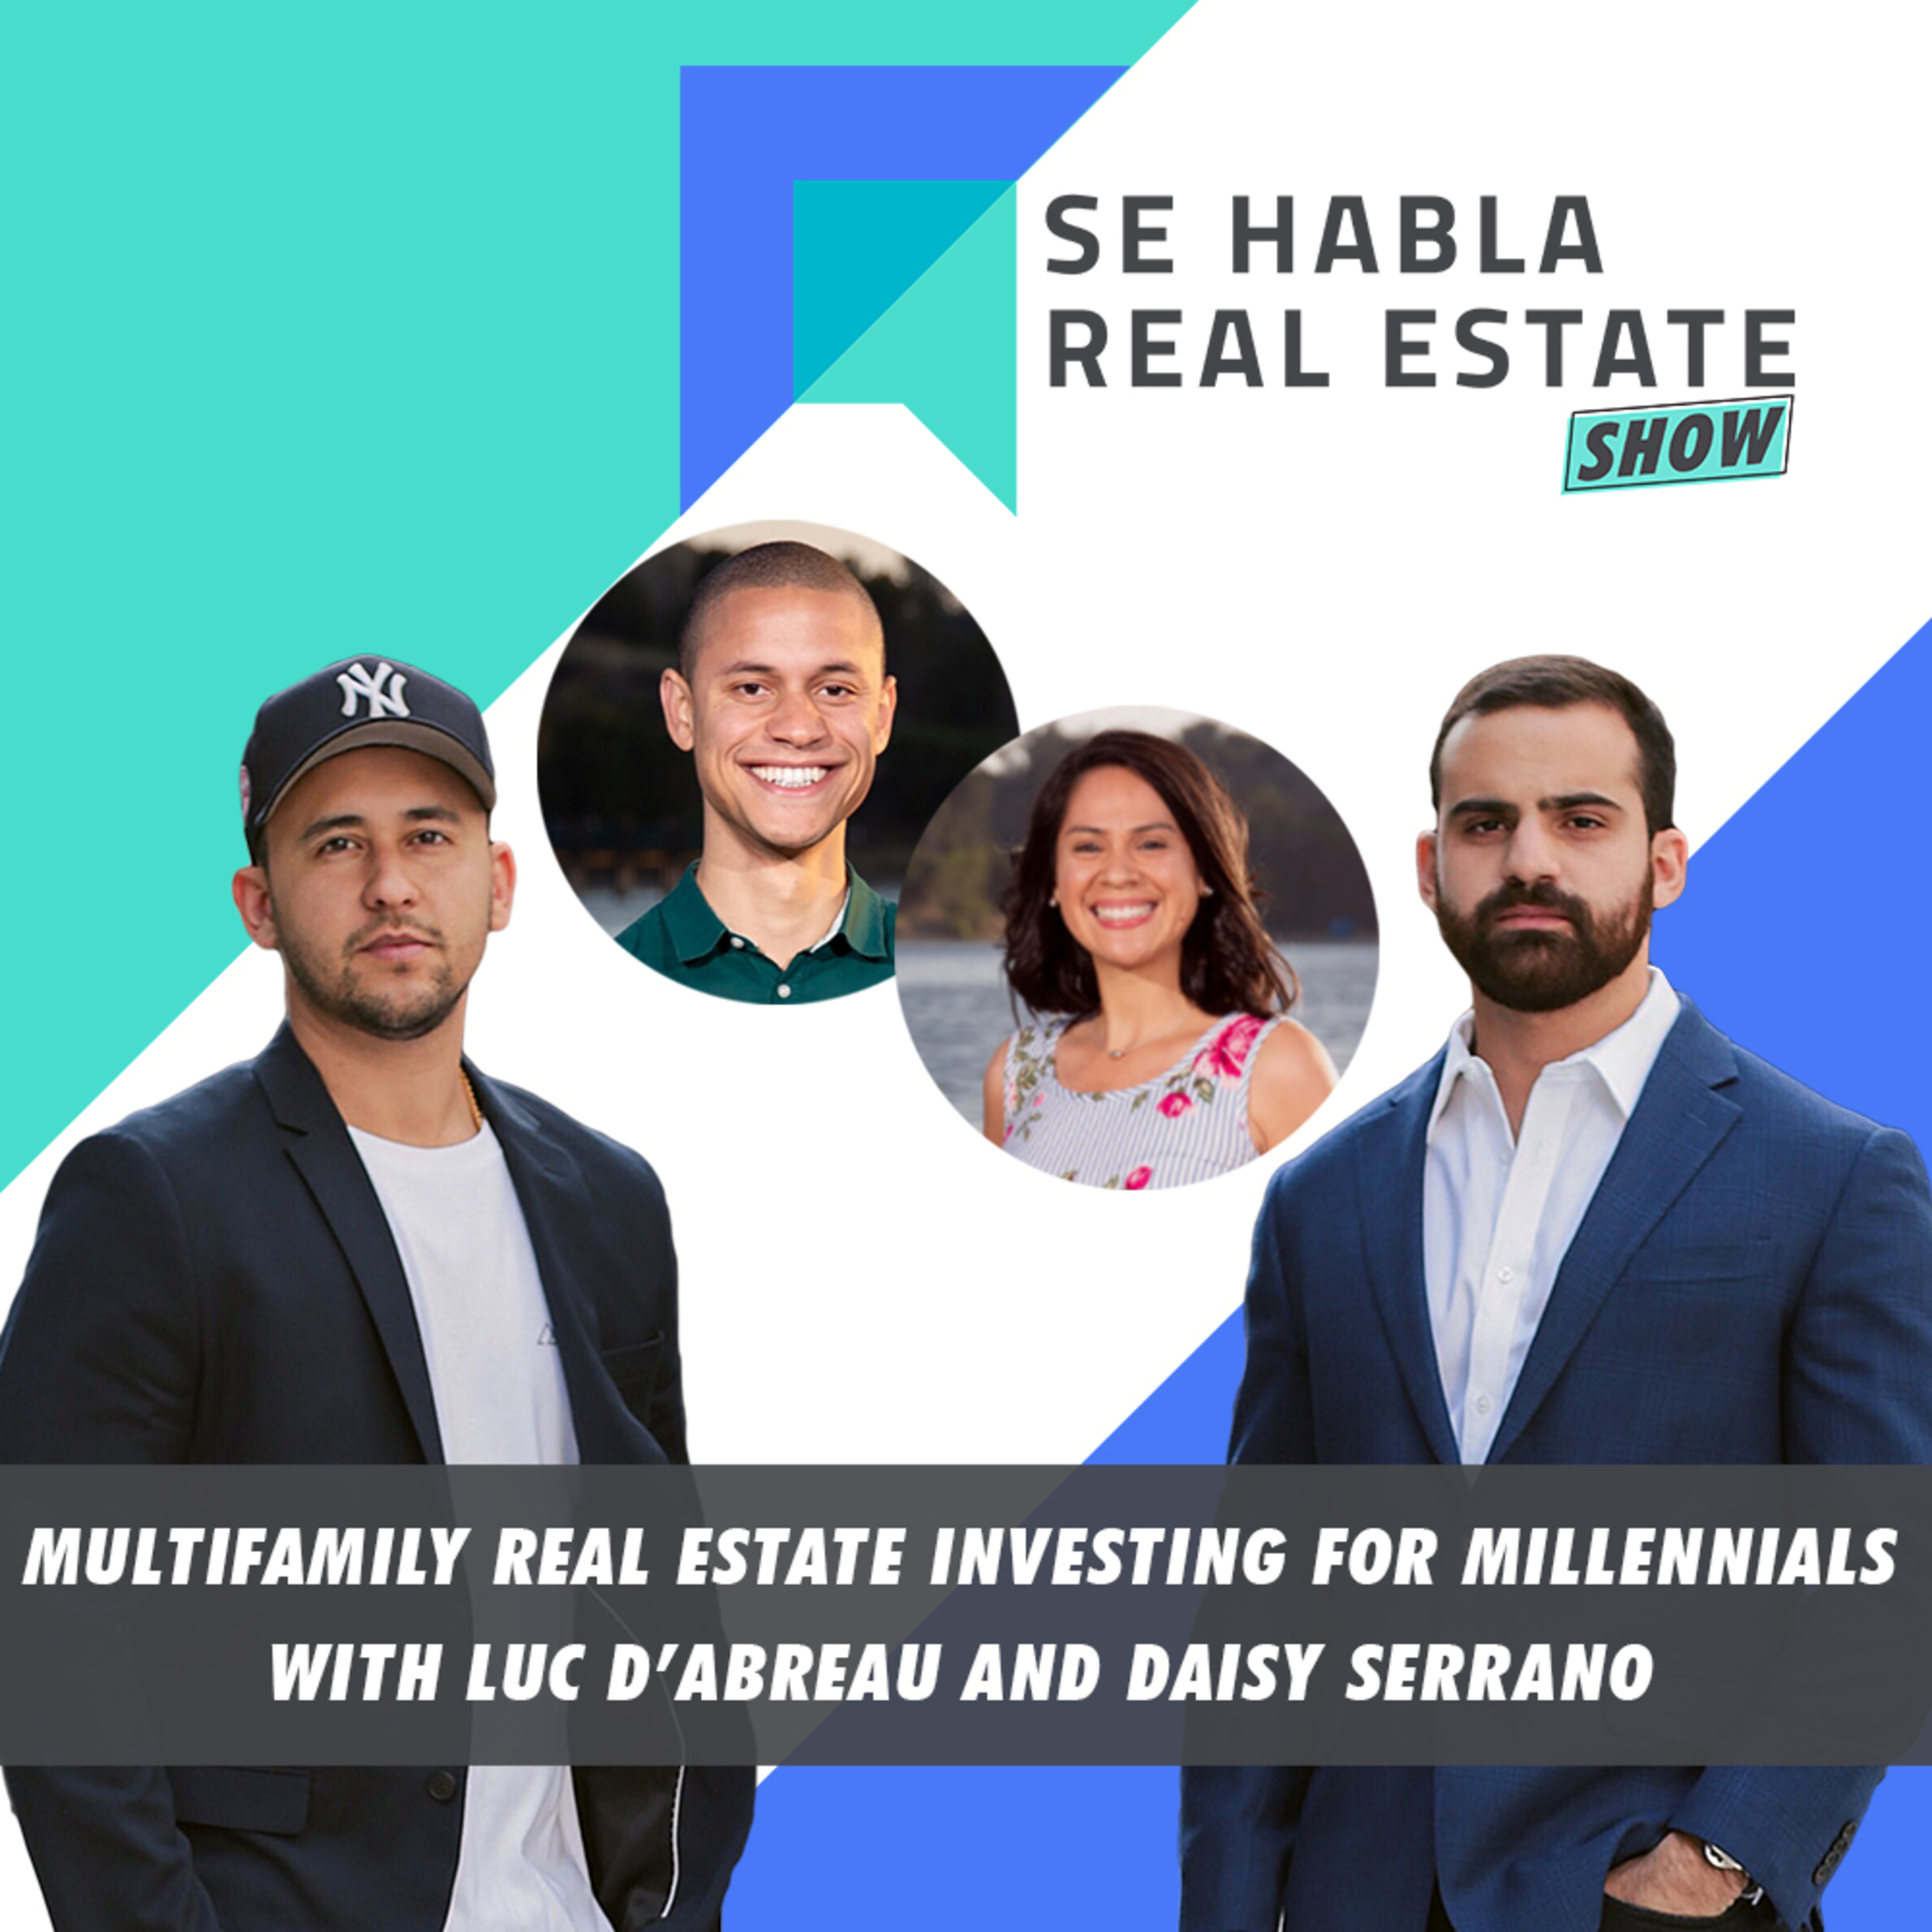 101 - SHRE: Multifamily Real Estate Investing for Millennials with Luc D'Abreau & Daisy Serrano